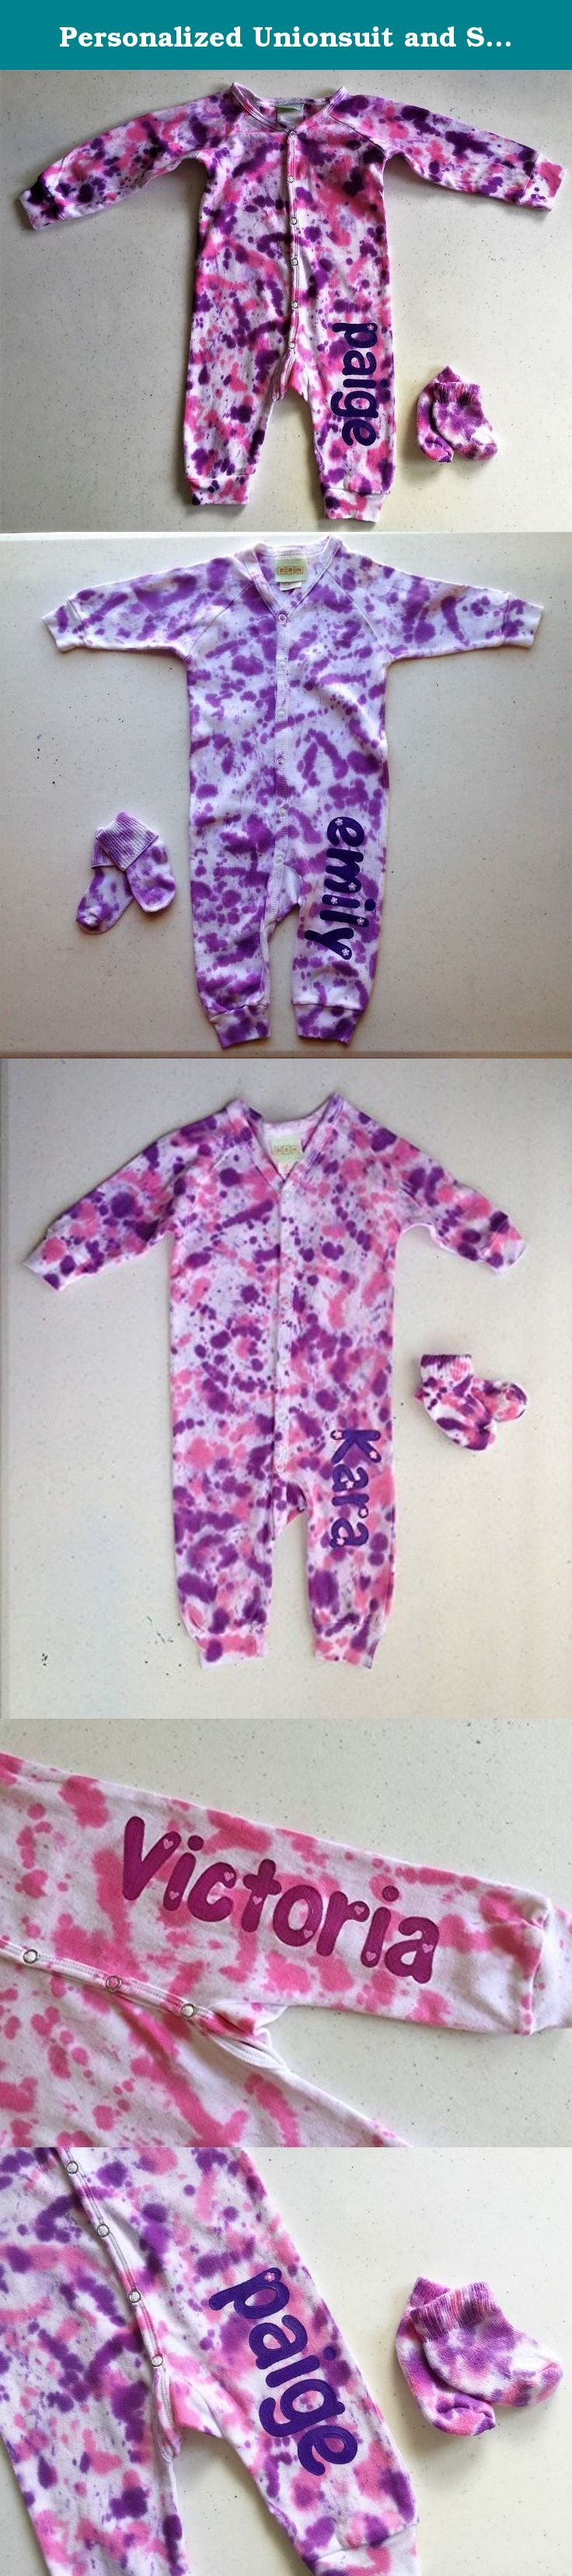 Personalized Unionsuit and Socks ~ Tie Dye & Hand Painted. This adorable 100% cotton Unionsuit has long sleeves and legs with front snaps and elastic wrist and ankle bands. So cute tie dyed but even cuter with baby's name down the leg! Matching socks are included. Dyes won't fade and are infant safe, paint is soft and non-toxic. Unionsuit is machine washable and will arrive wrapped in cellophane with attached washing instructions. If you are purchasing as a gift, I am happy to enclose a...